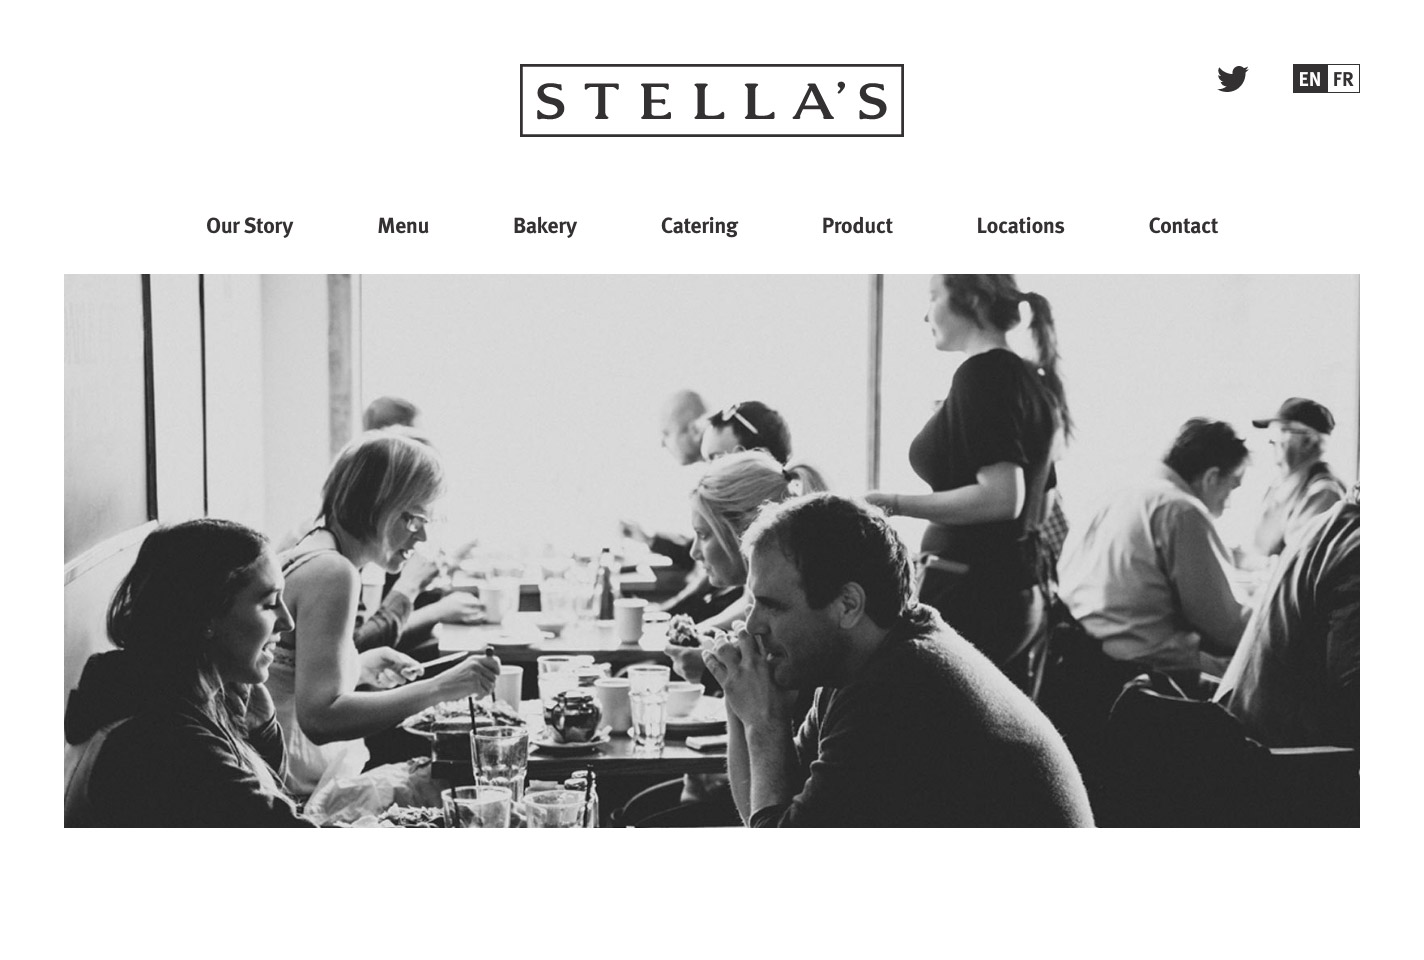 Stella's home page